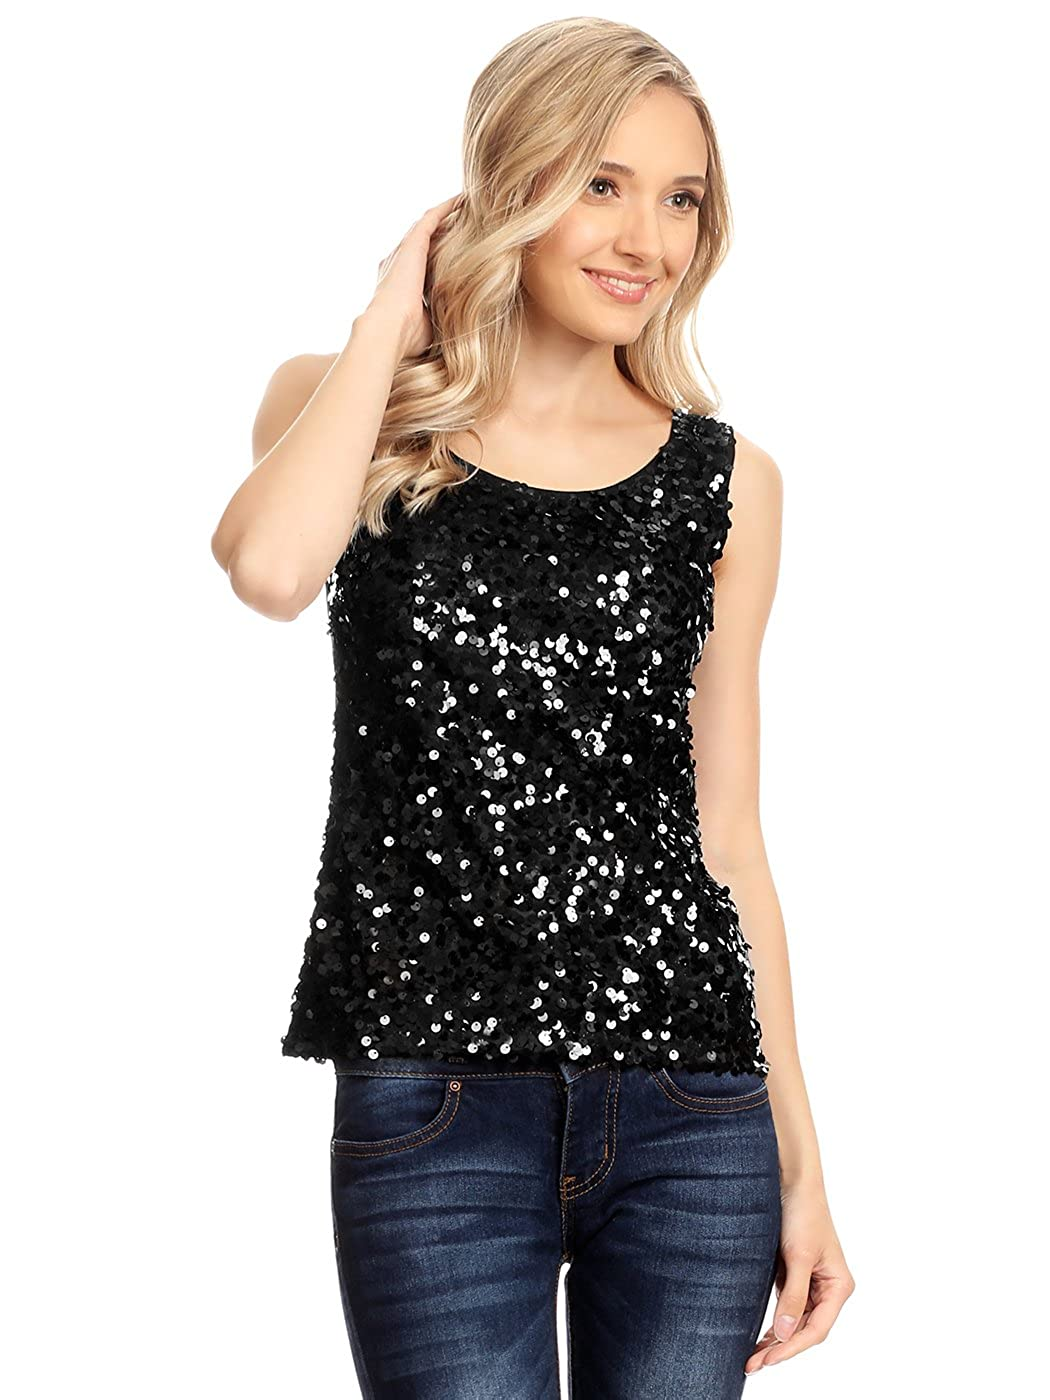 86fe27b712 A sparkly embellished tank top beaded entirely in round shiny metallic  sequins in the front with a comfortable fit soft polyester jersey knit  material ...